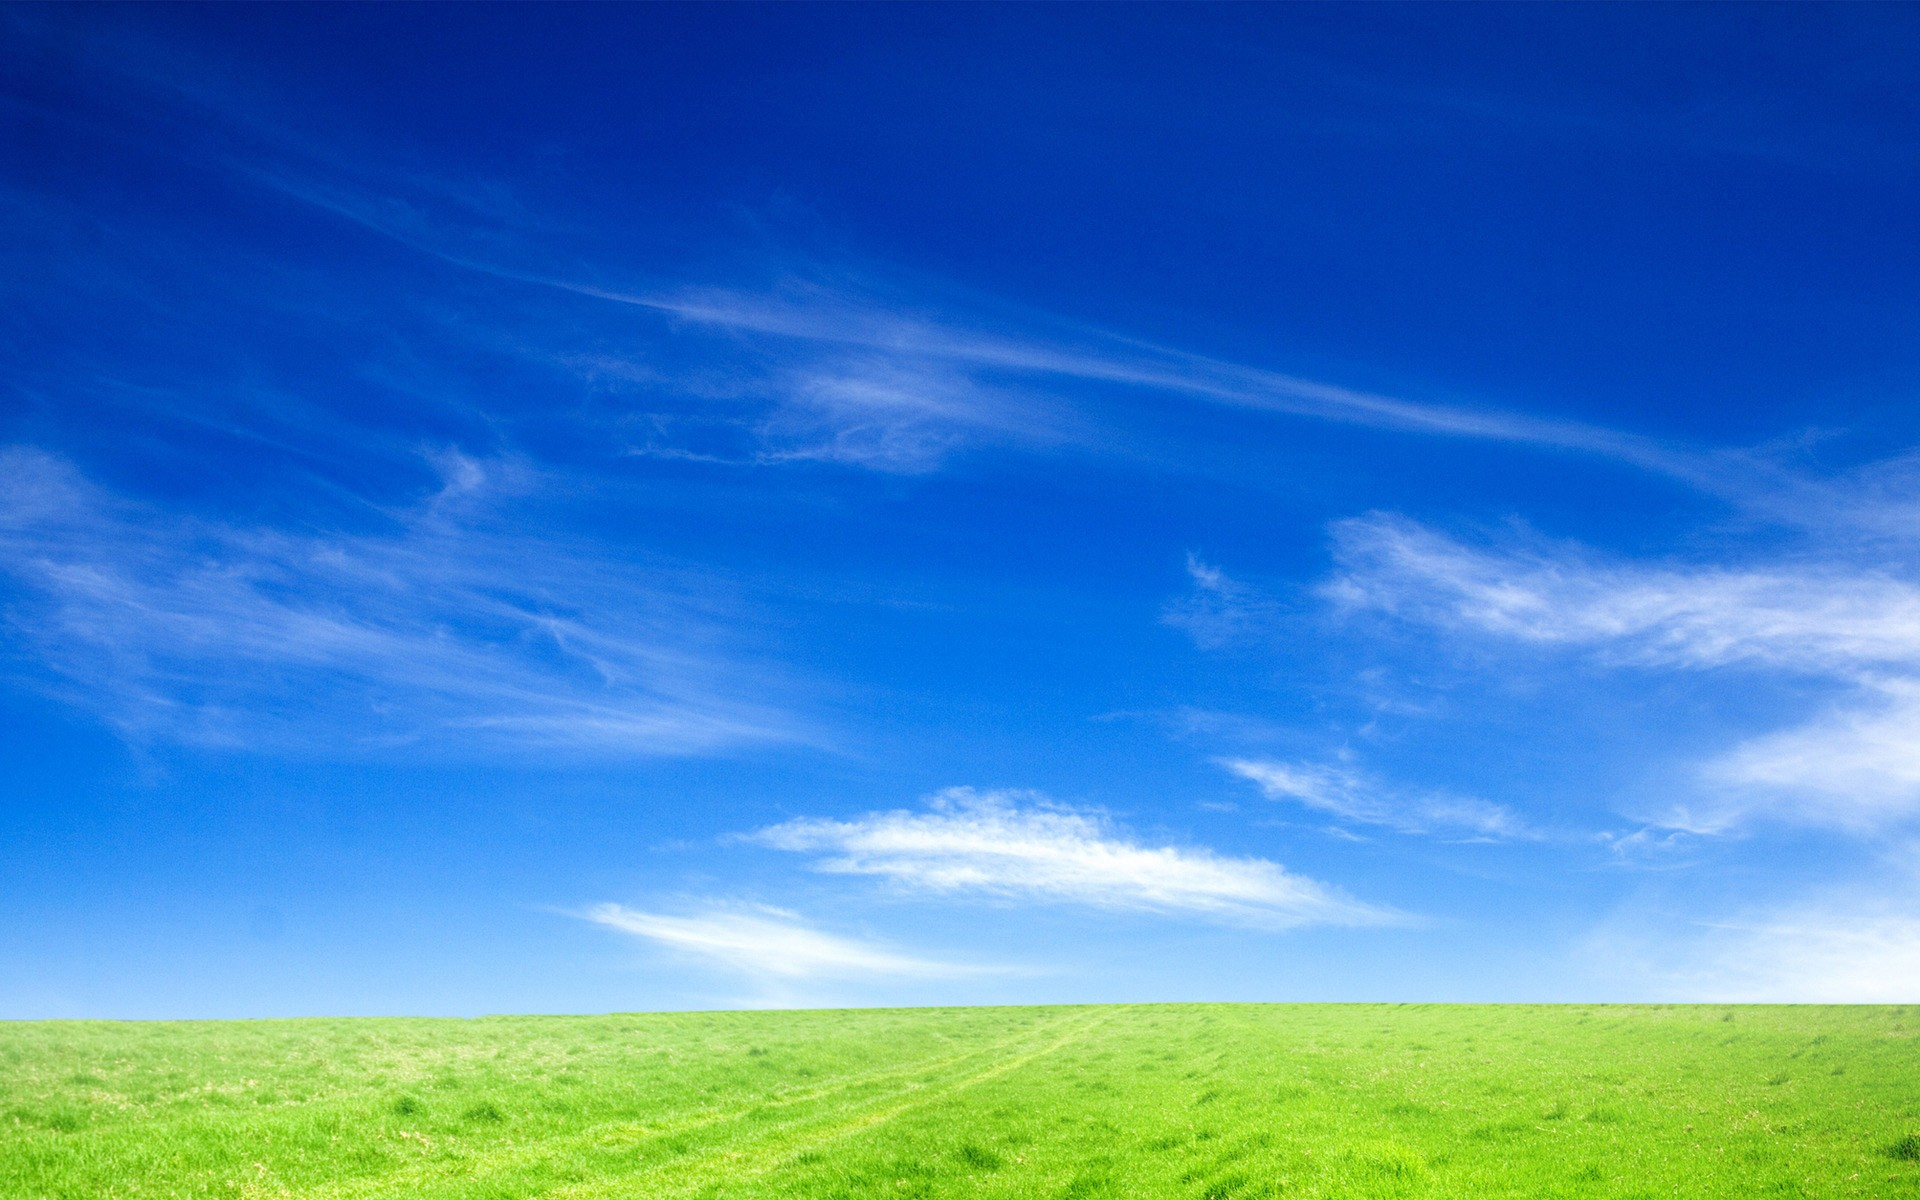 Green Anime Wallpaper Blue Sky And Green Grass Wallpapers Hd Wallpapers Id